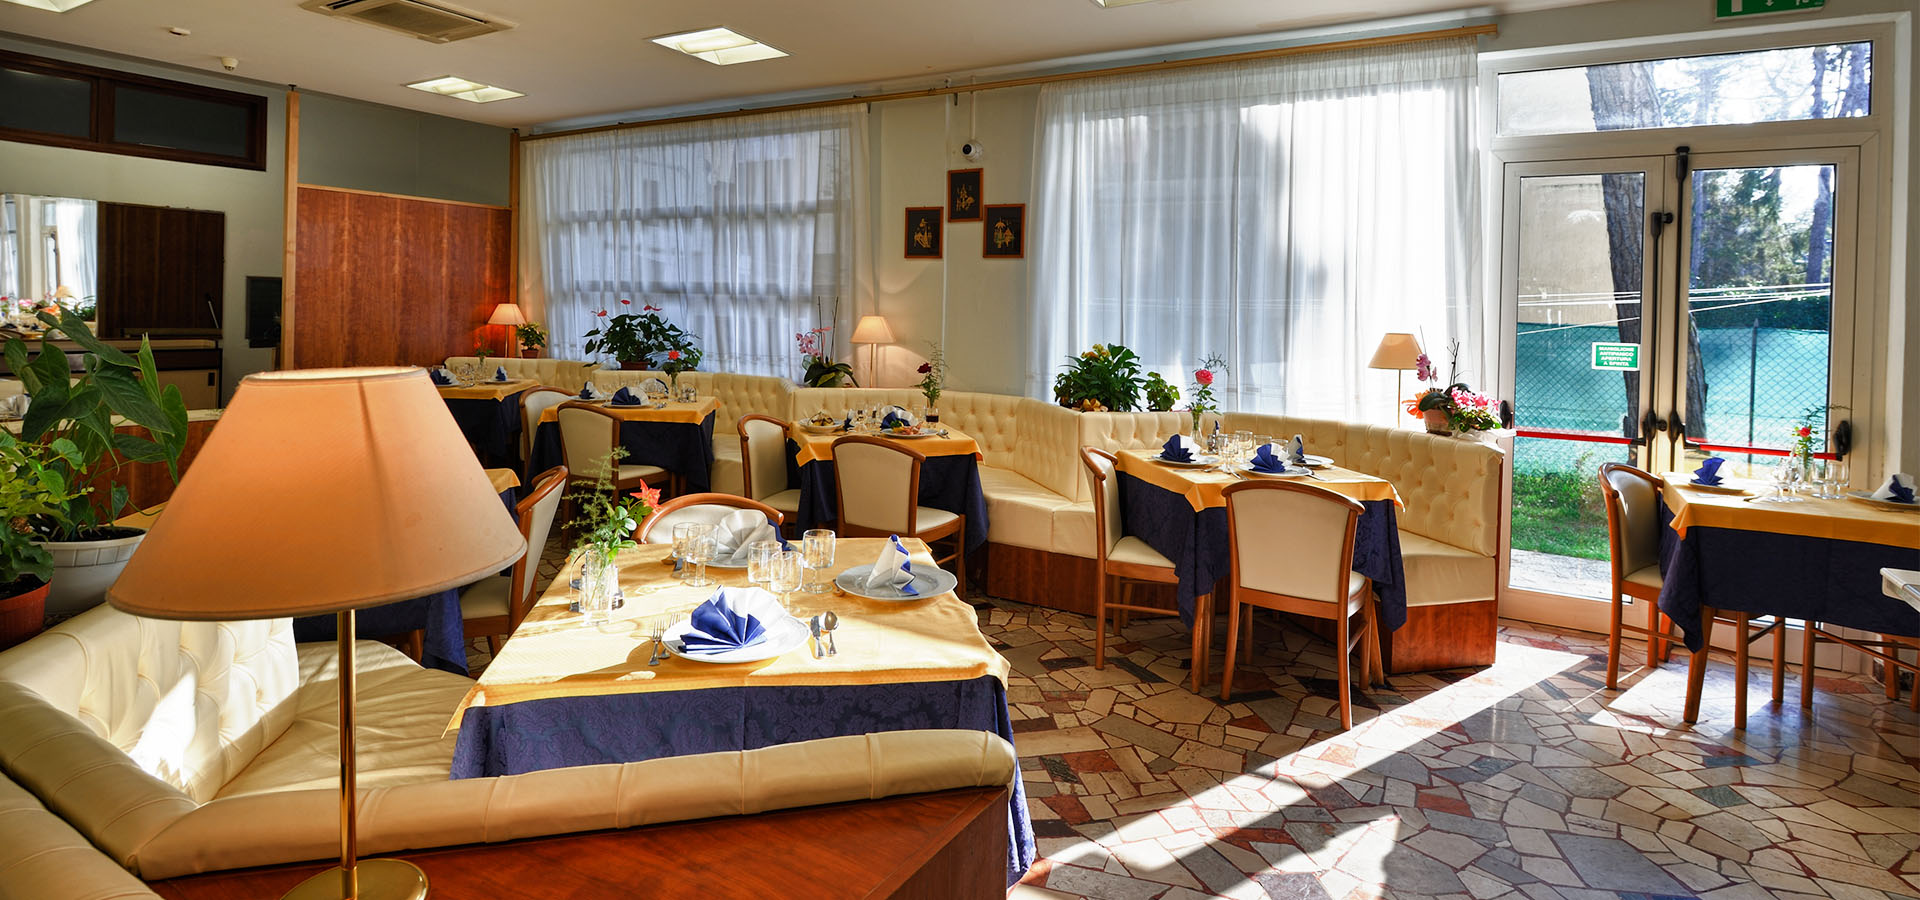 hotel with restaurant in Lignano